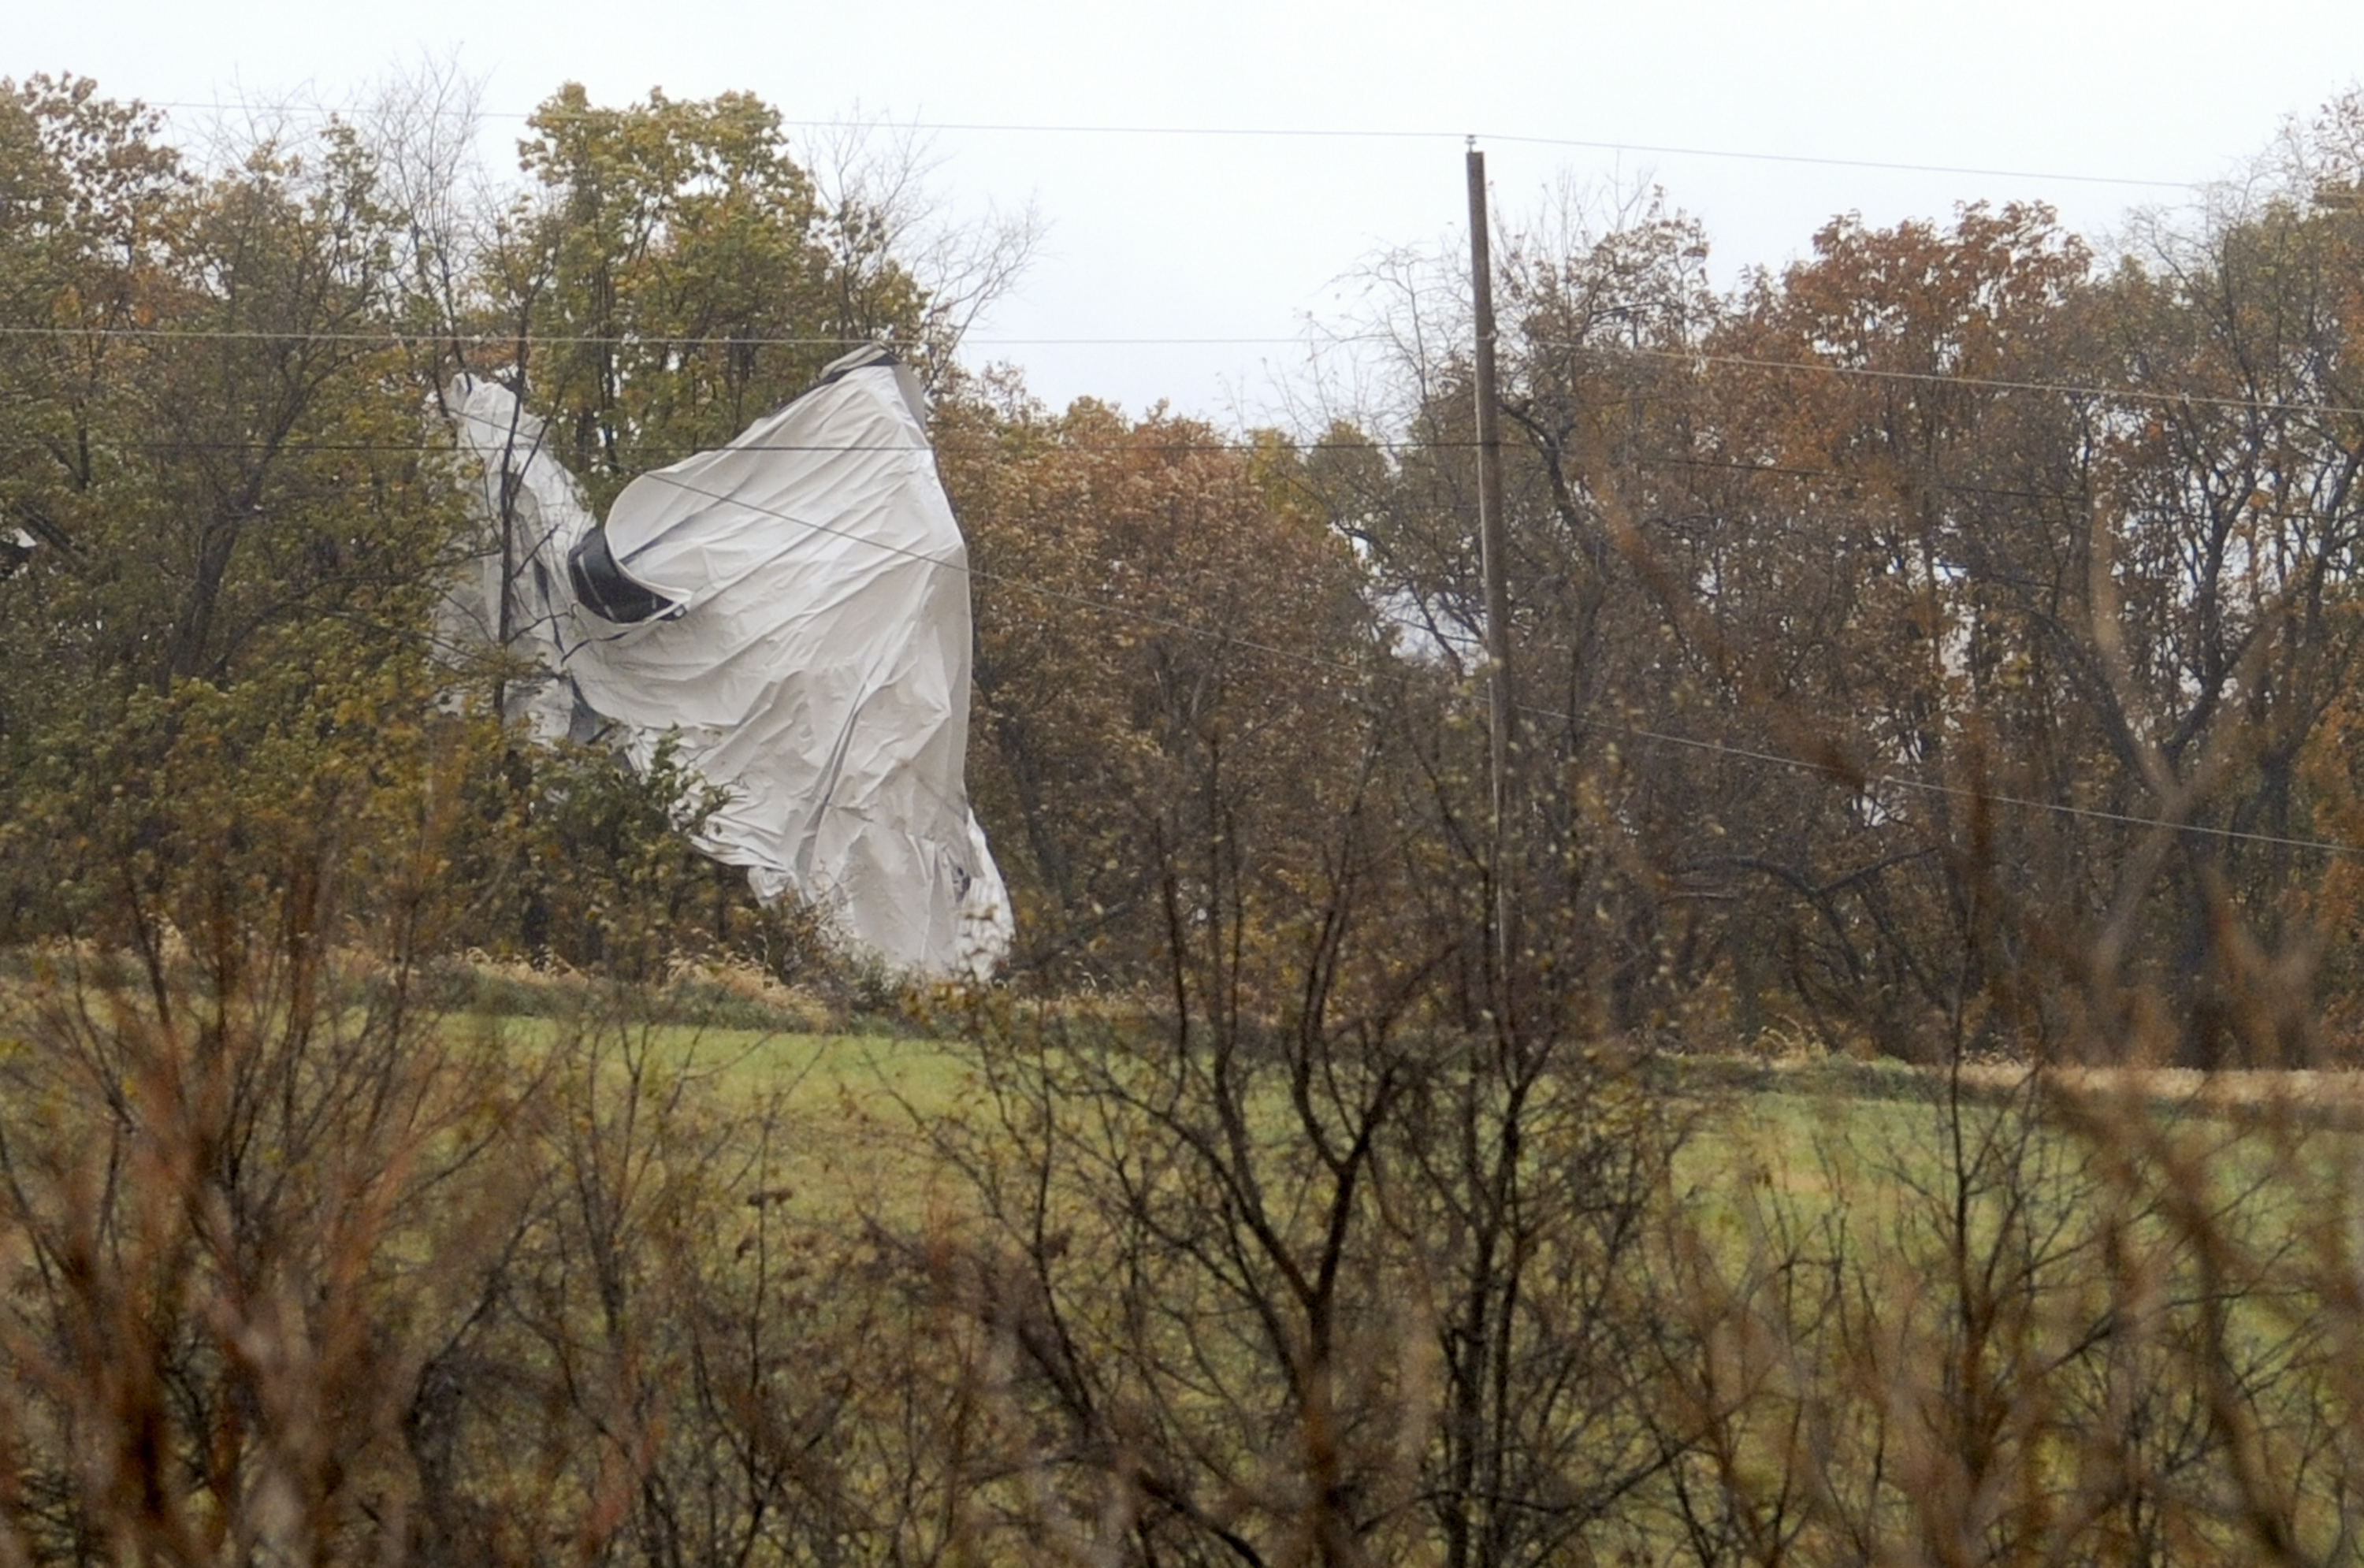 Part of an unmanned Army surveillance blimp hangs off a group of trees after crash landing near Muncy, Pa. on Oct. 28, 2015.